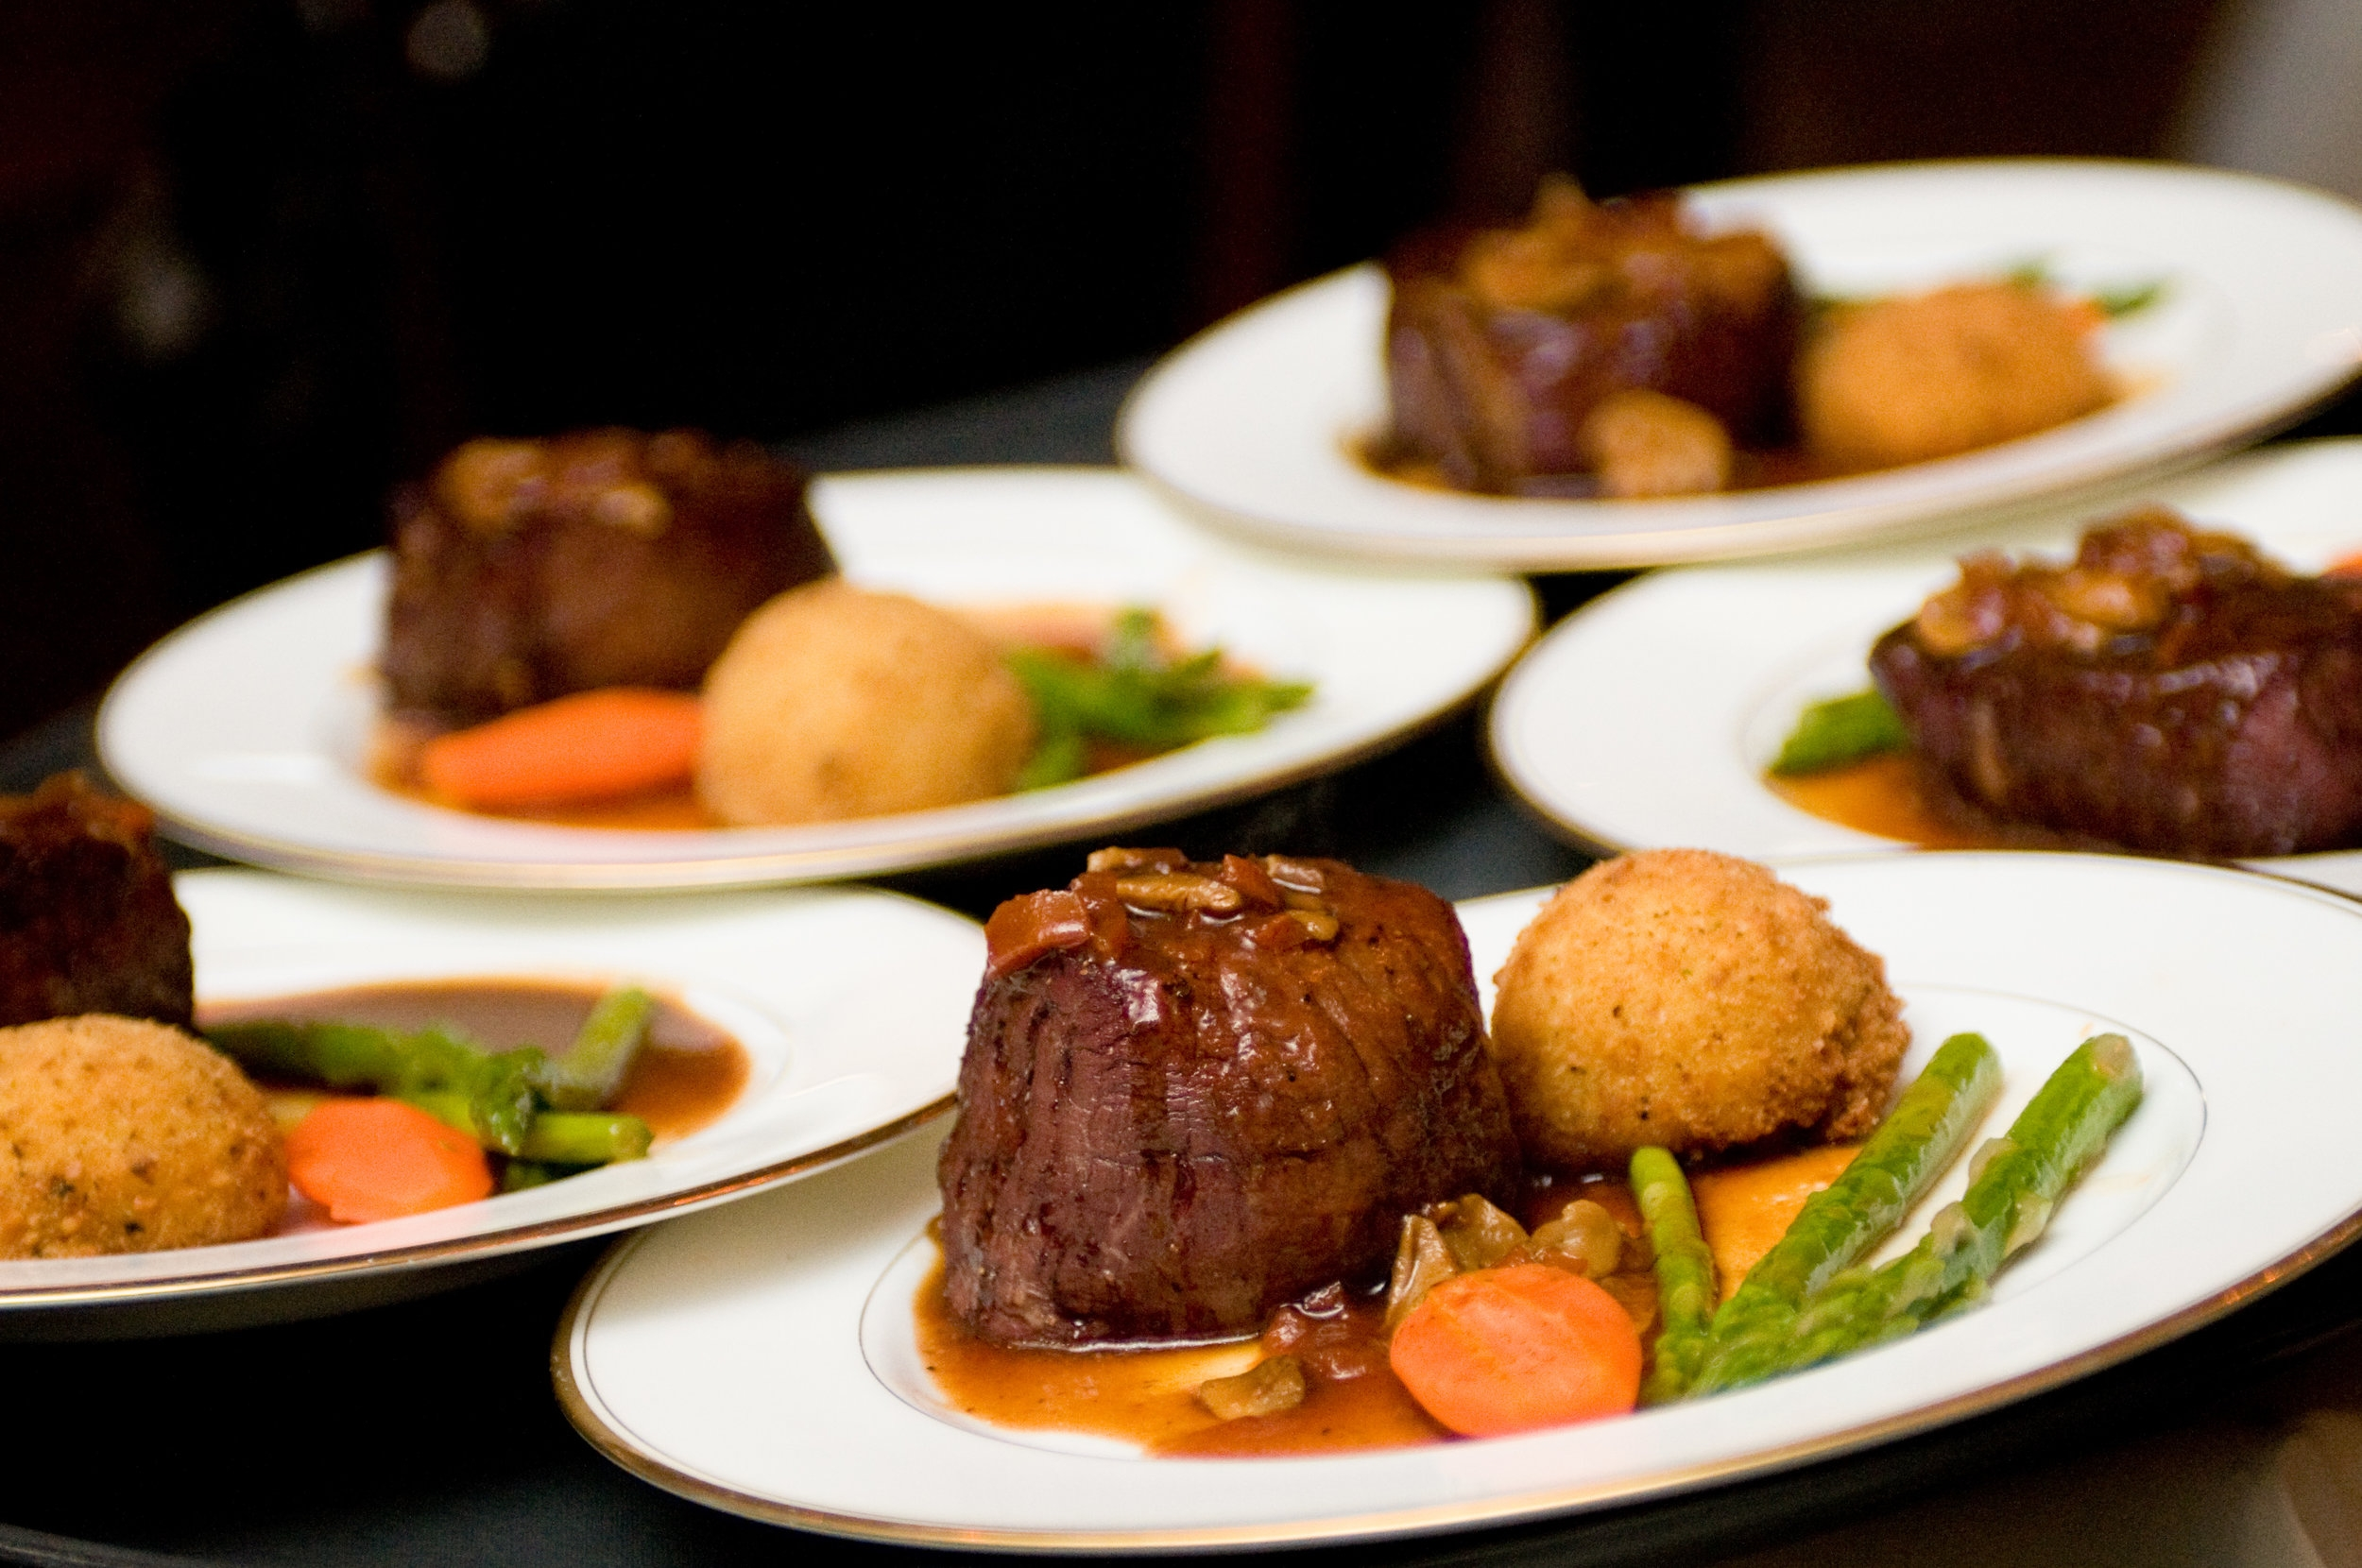 OUR MENUS - From rehearsal dinners to bridal showers, weddings to corporate events, Vickers has standard and customized menus to suite ever need.